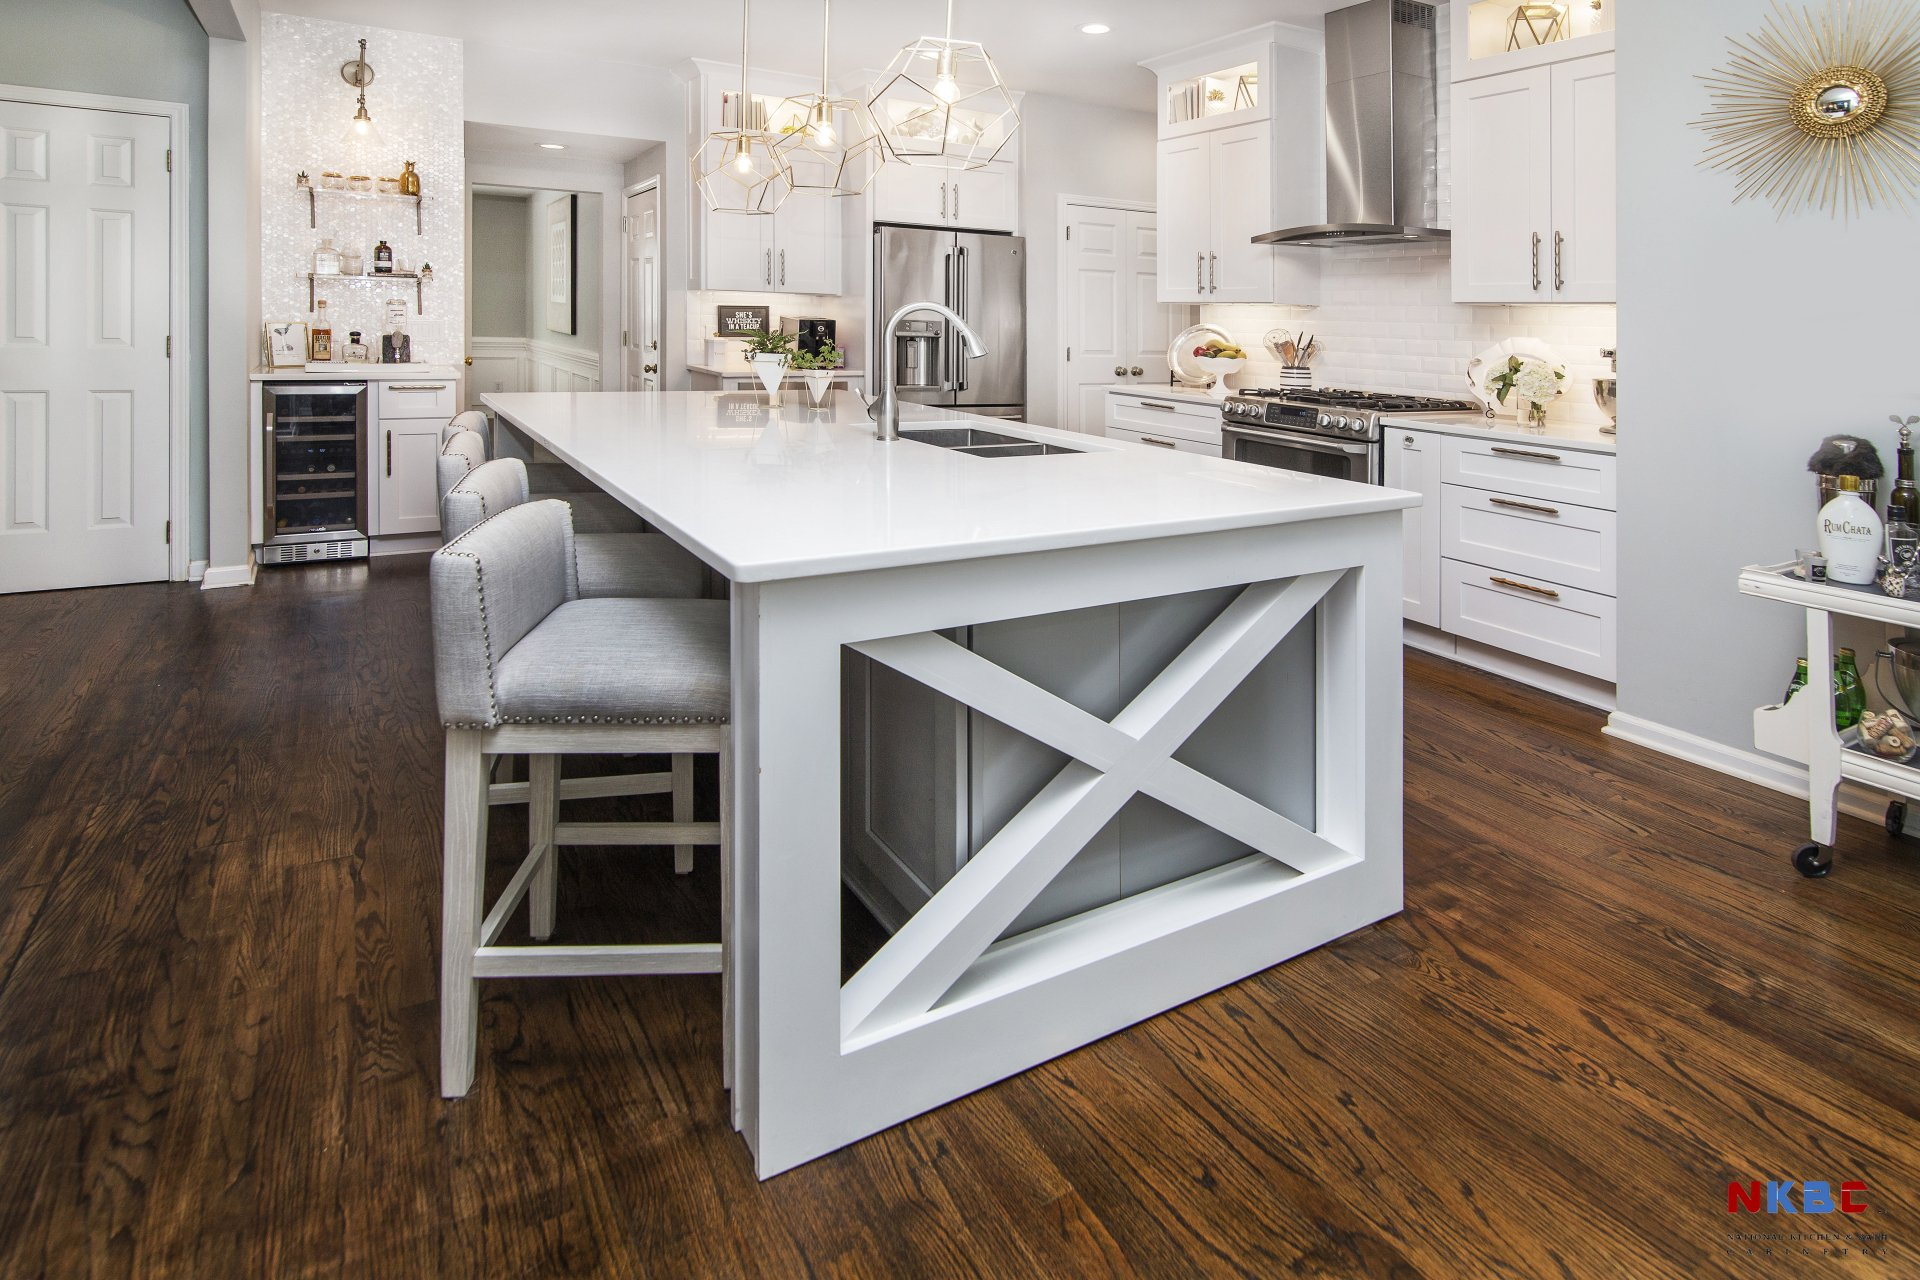 National Kitchen & Bath Cabinetry Inc - Concord, NC ...